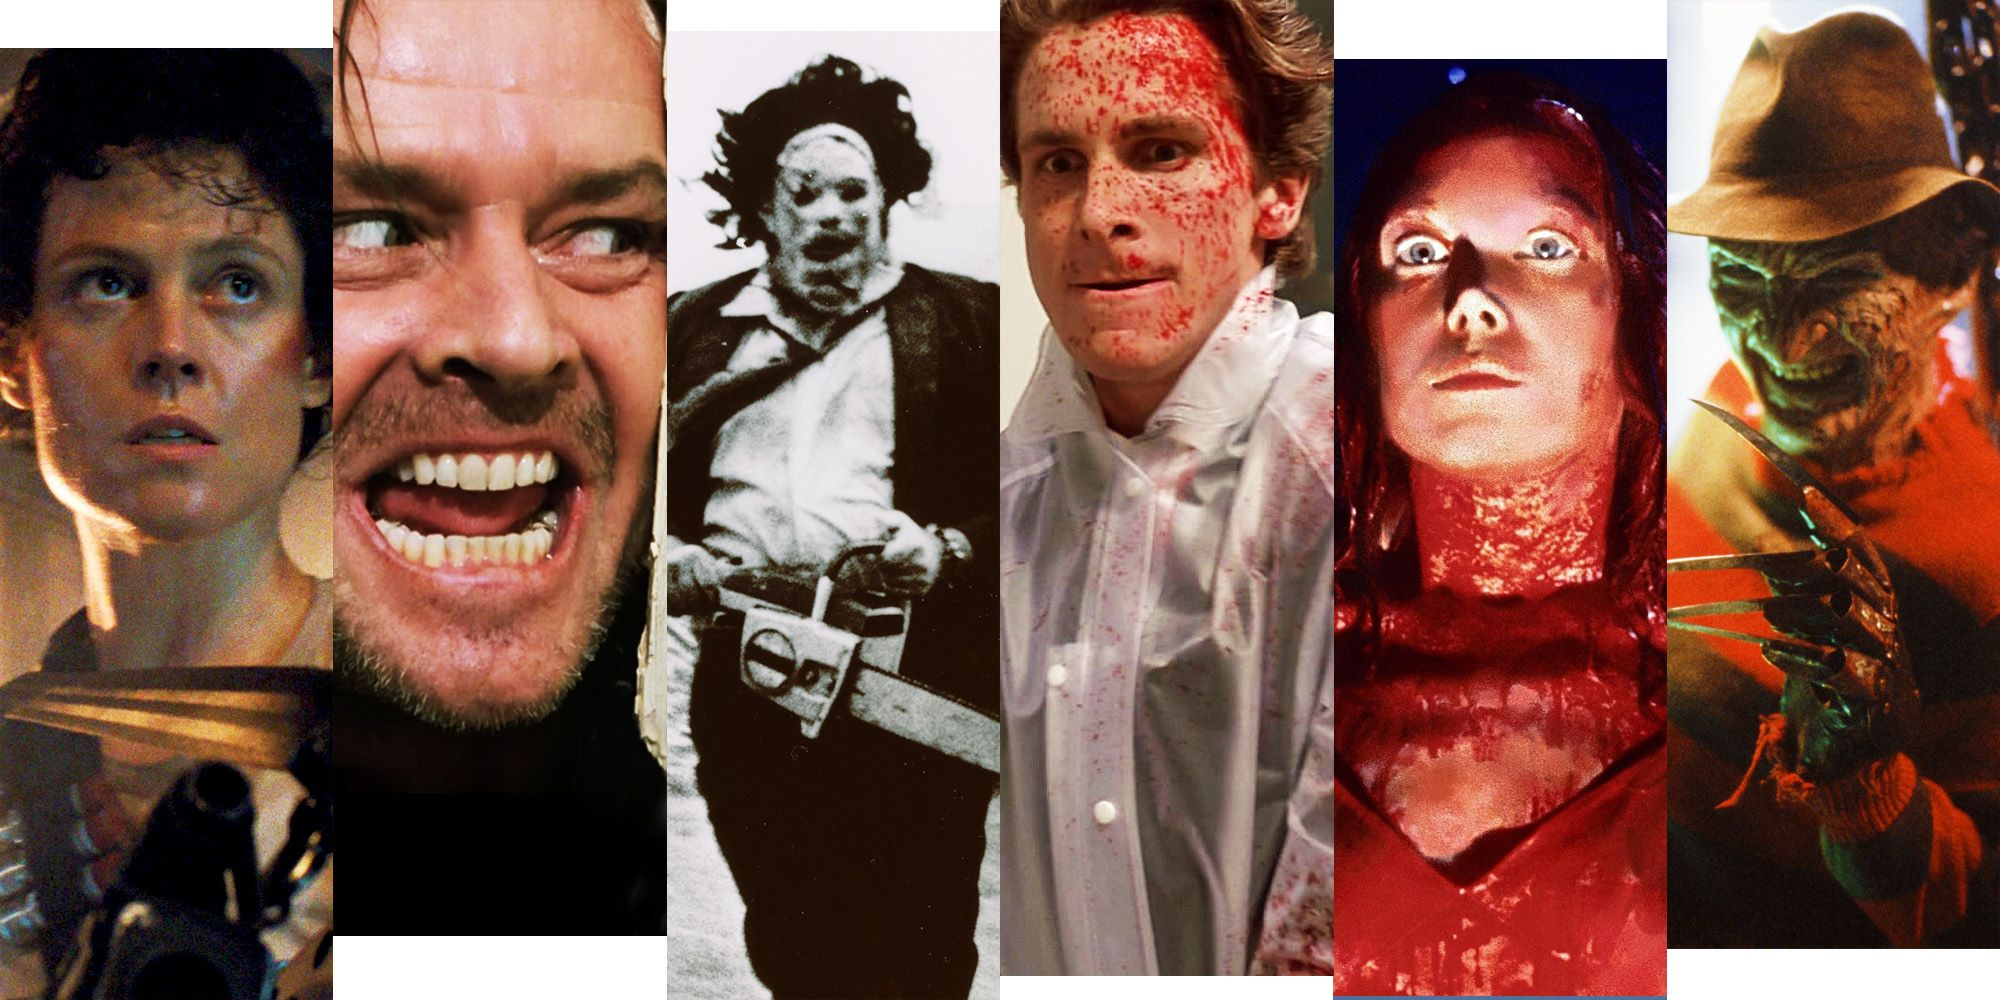 40 scariest halloween movies of all time - best classic horror movies